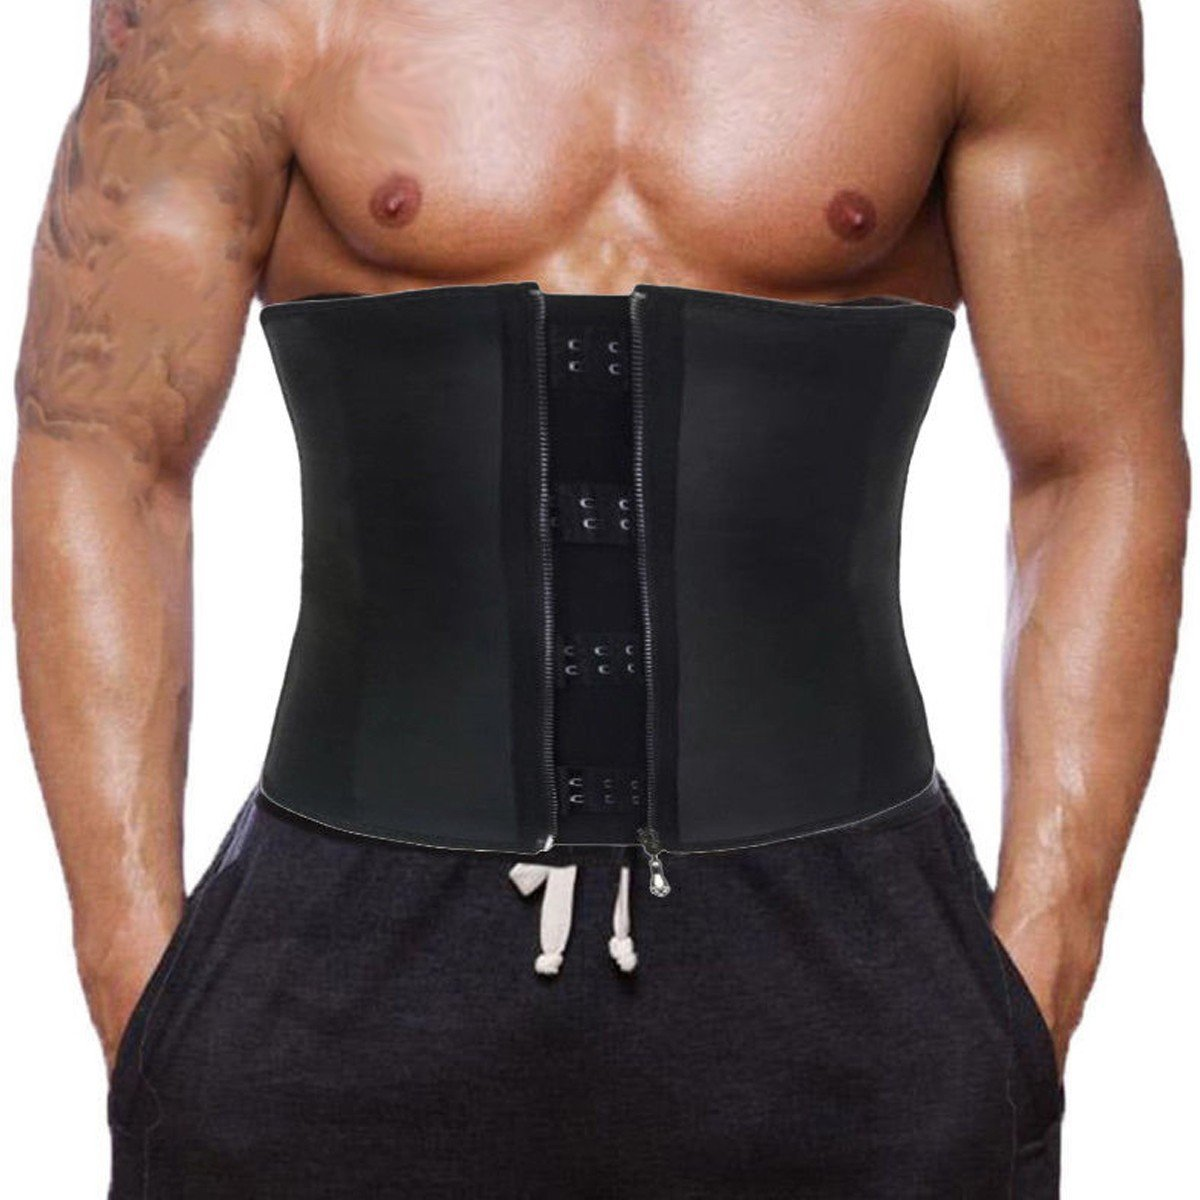 CROSS1946 Men's Waist Trainer Corsets with Steel Bones Underbust Sweat Sauna Suits Fitness Gym for Weight Loss